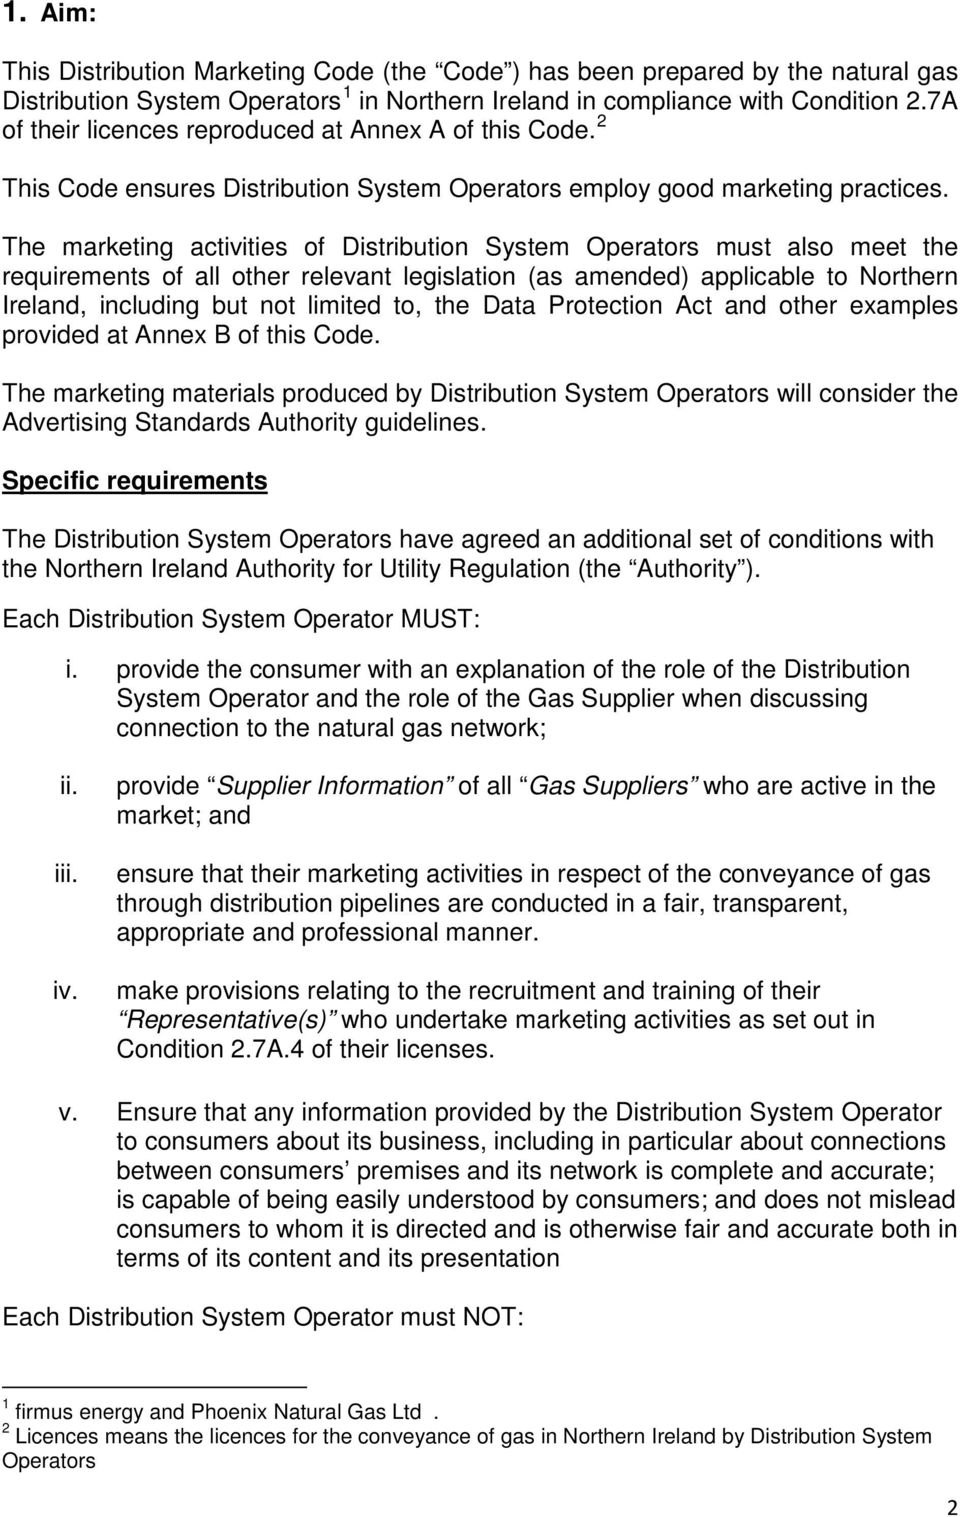 The marketing activities of Distribution System Operators must also meet the requirements of all other relevant legislation (as amended) applicable to Northern Ireland, including but not limited to,